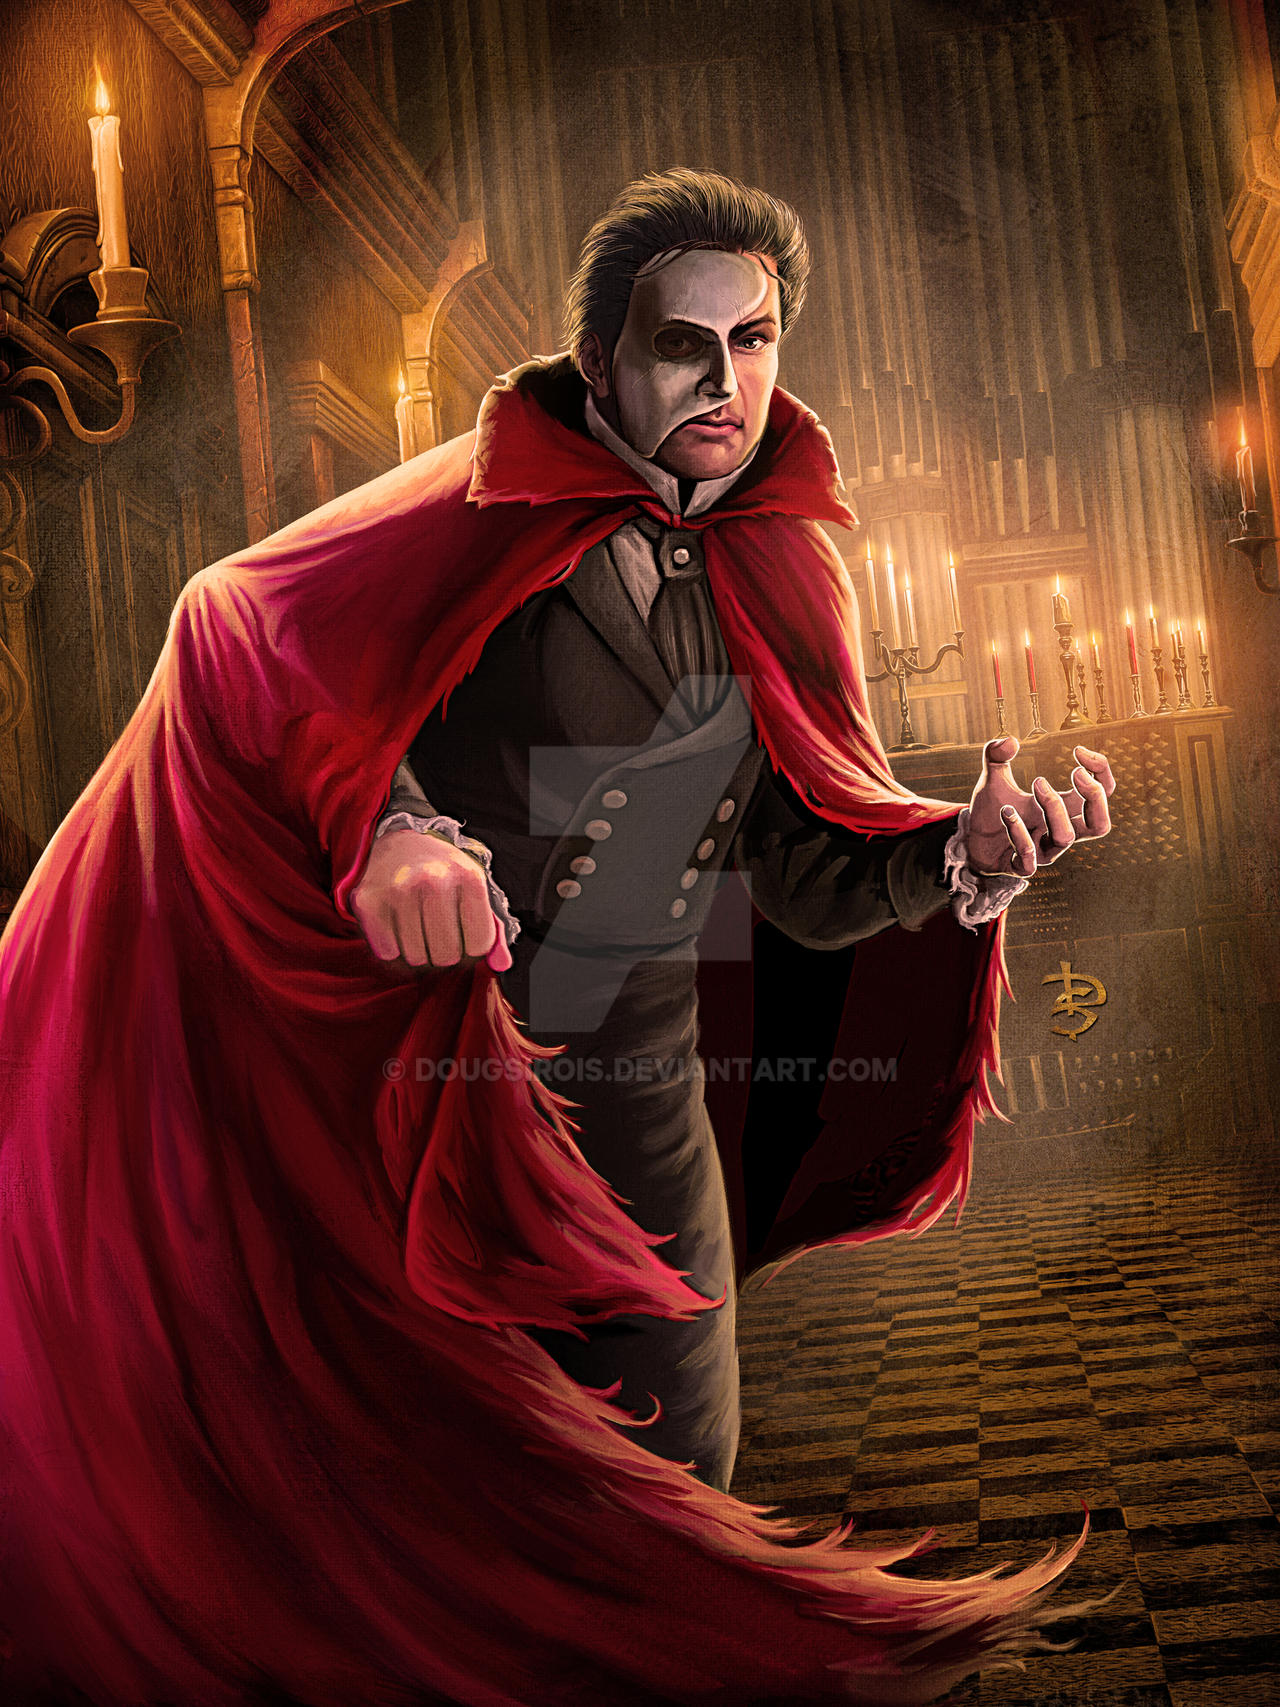 phantom of the opera writer The phantom of the opera (french: le fantôme de l'opéra) is a novel by french writer gaston leroux it was first published as a serialization in le gaulois from 23 september 1909, to 8 january 1910.